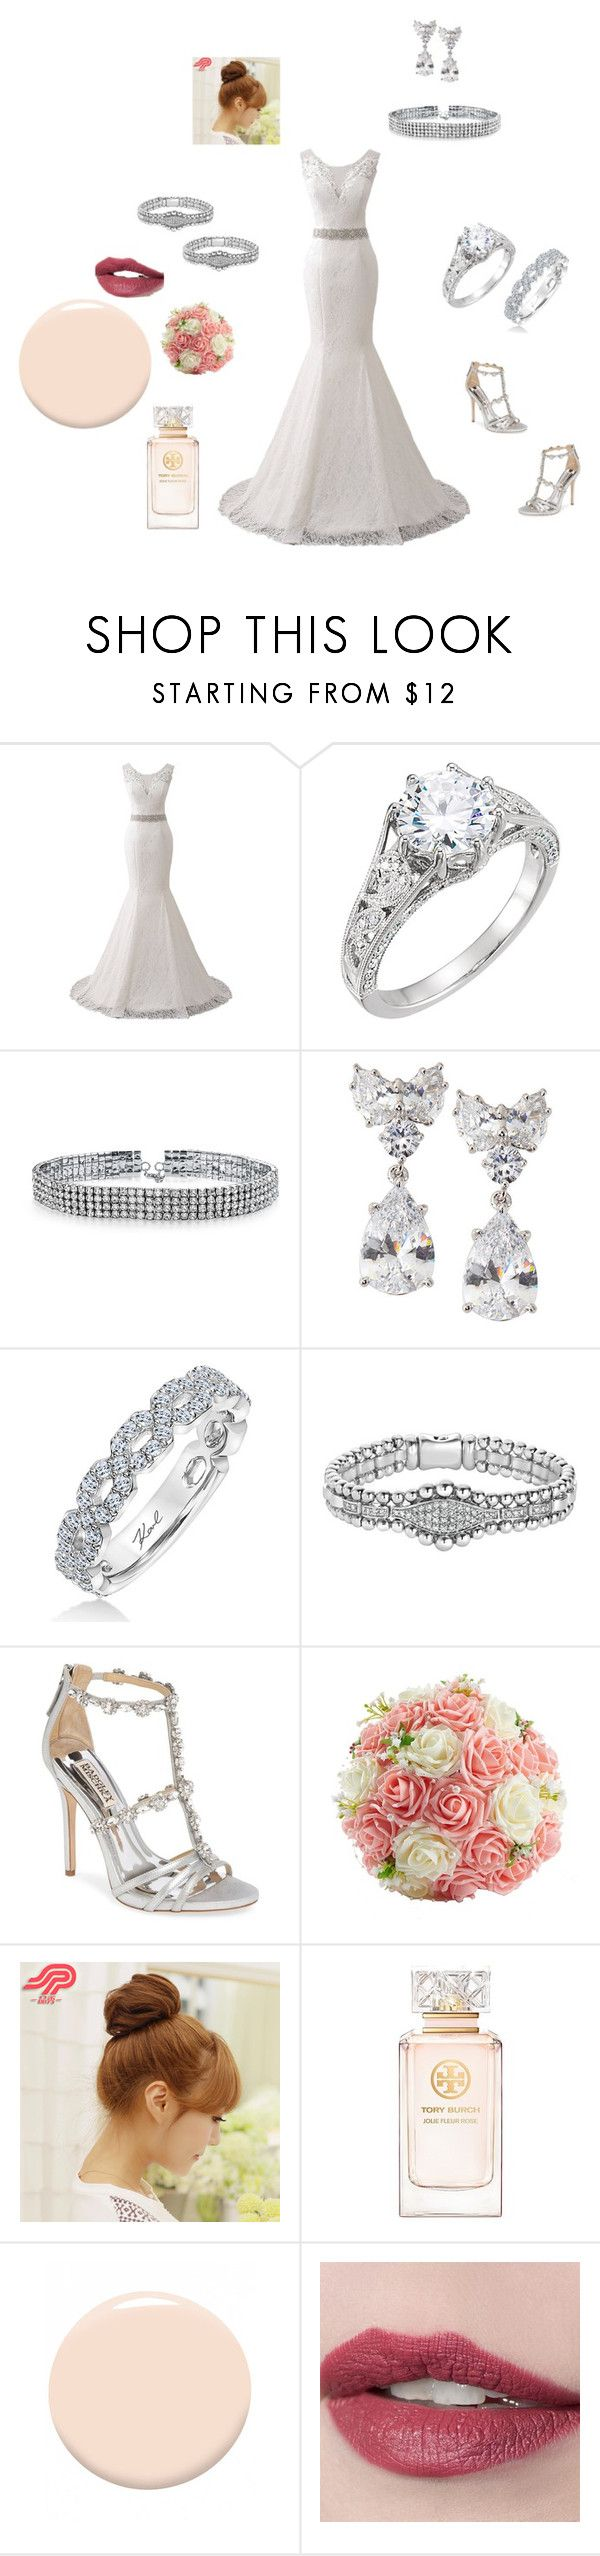 """""""going to the chapel wedding"""" by cassandra-beauchamp on Polyvore featuring Bling Jewelry, Fantasia by DeSerio, Karl Lagerfeld, Lagos, Badgley Mischka, Pin Show, Tory Burch and Christian Dior"""